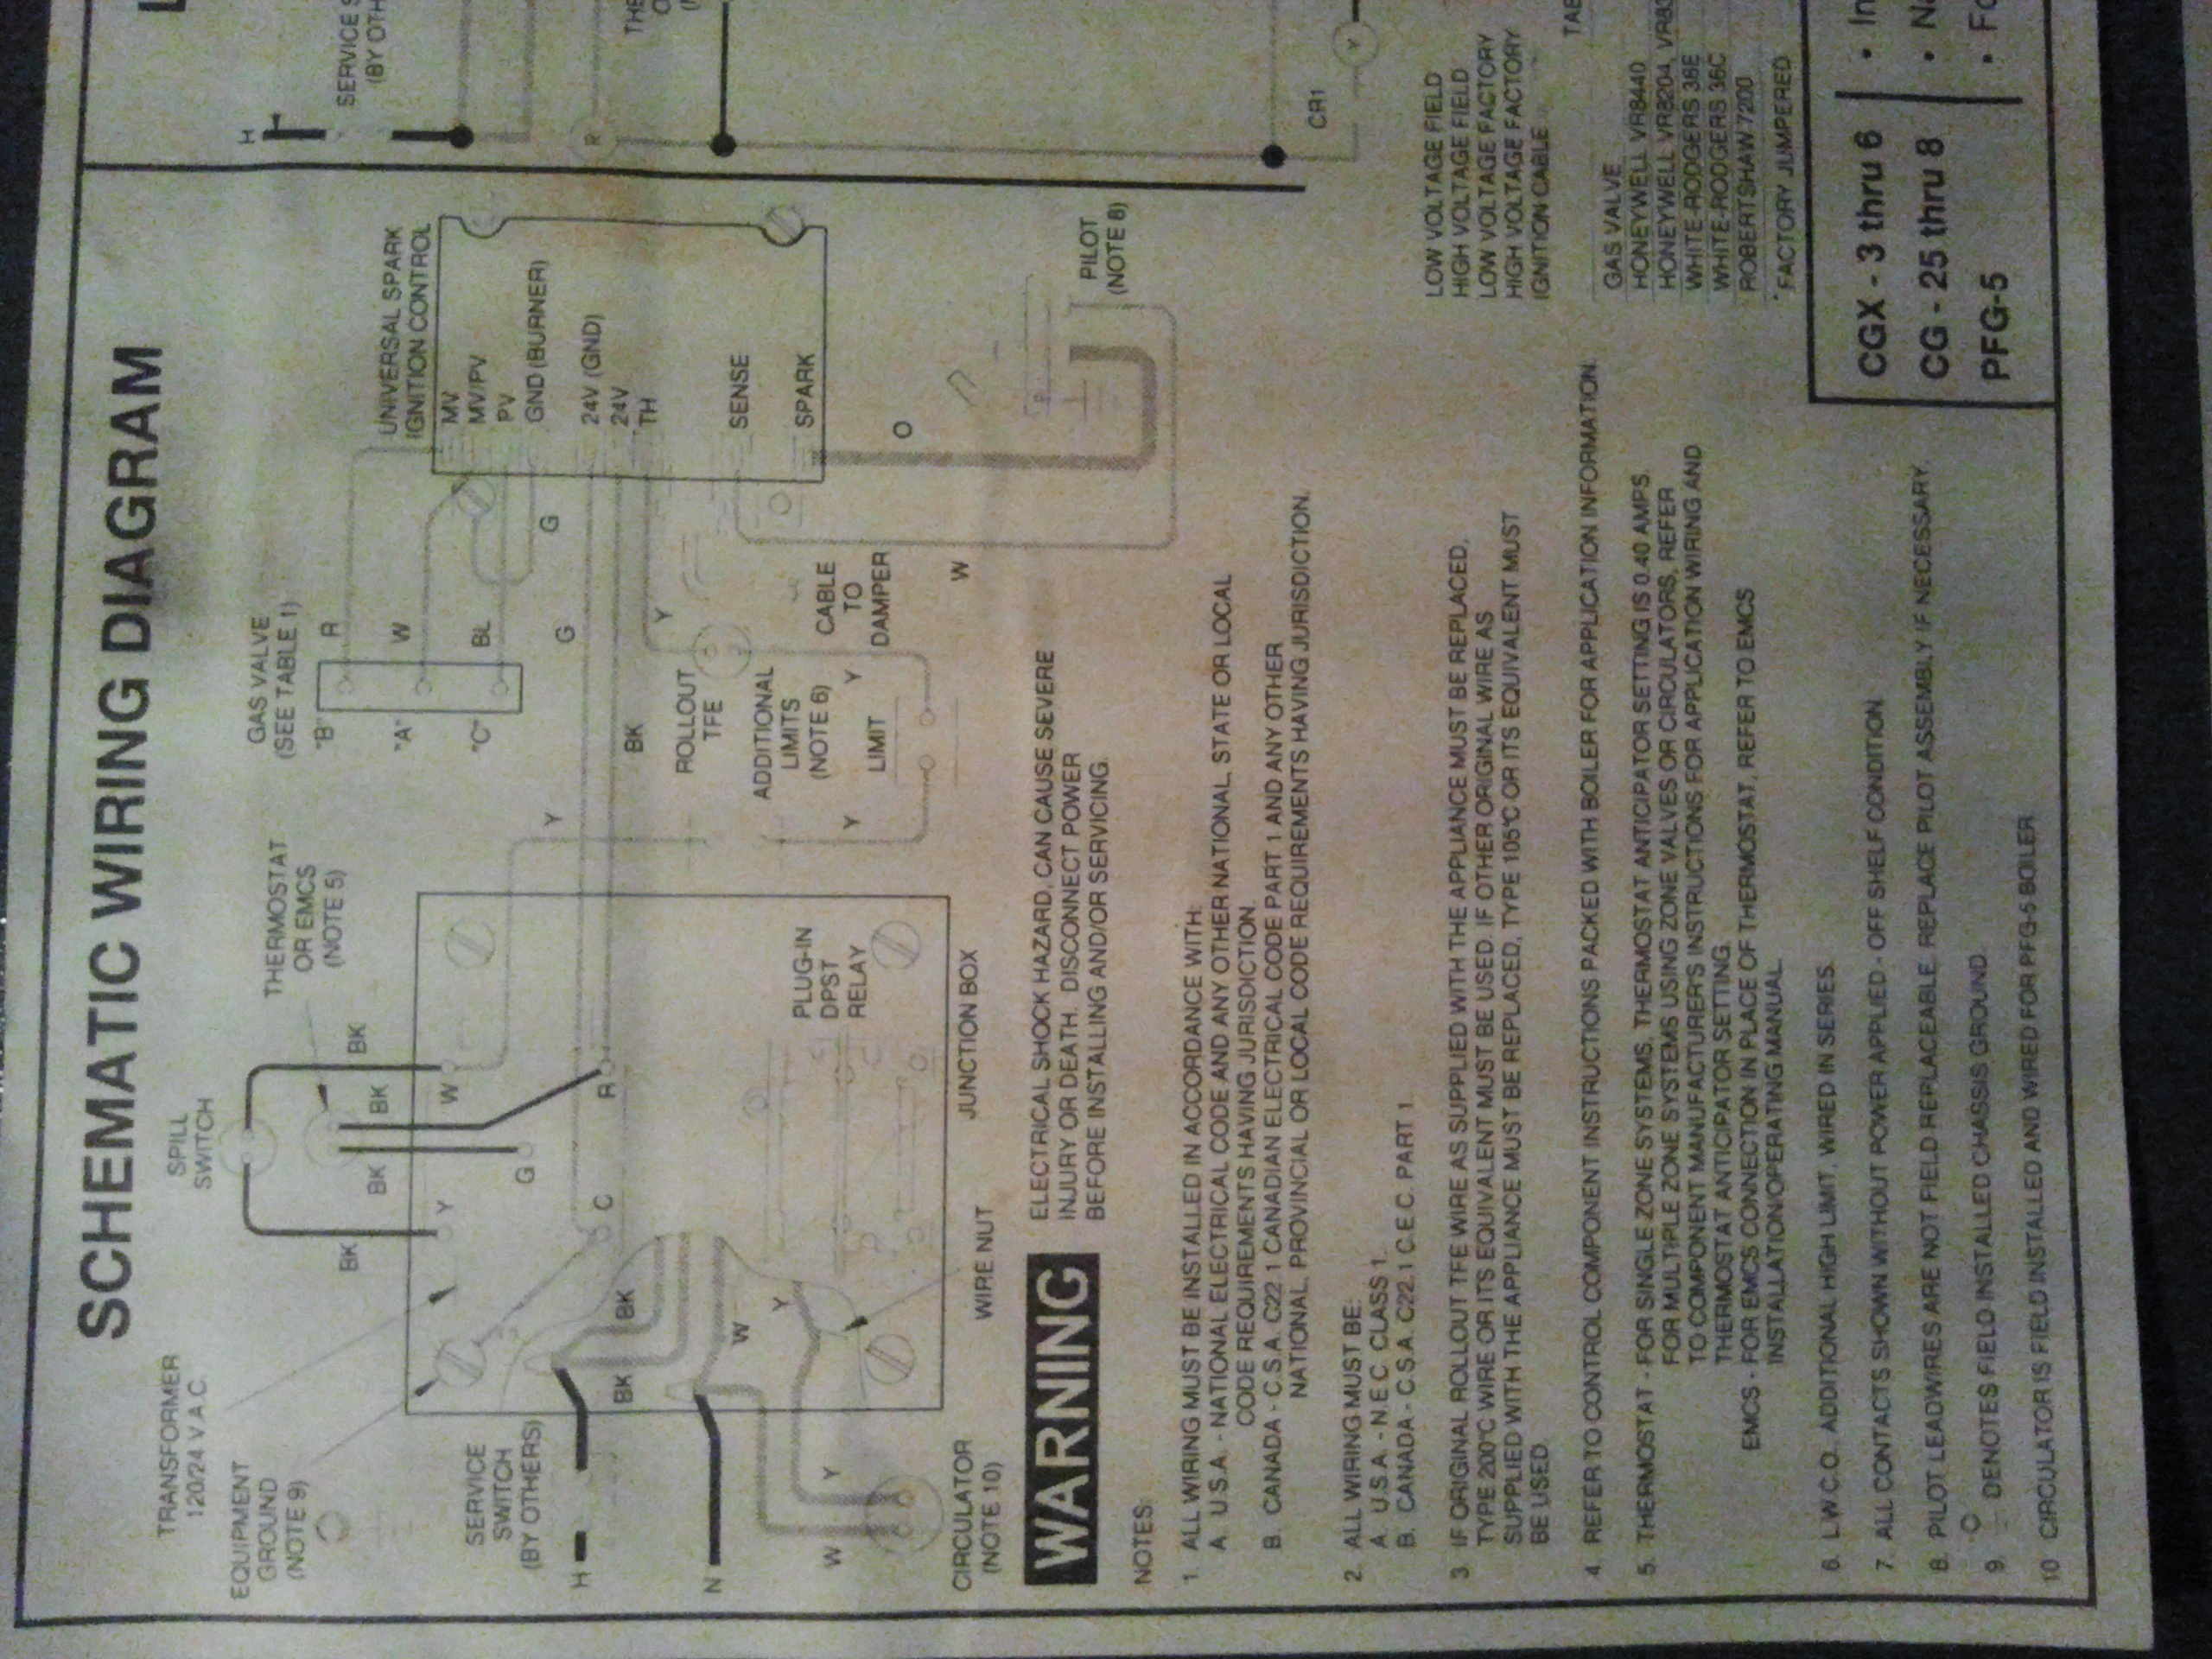 Weil Mclain Boiler Schematic Diagram Wiring Libraries Libraryweil 10